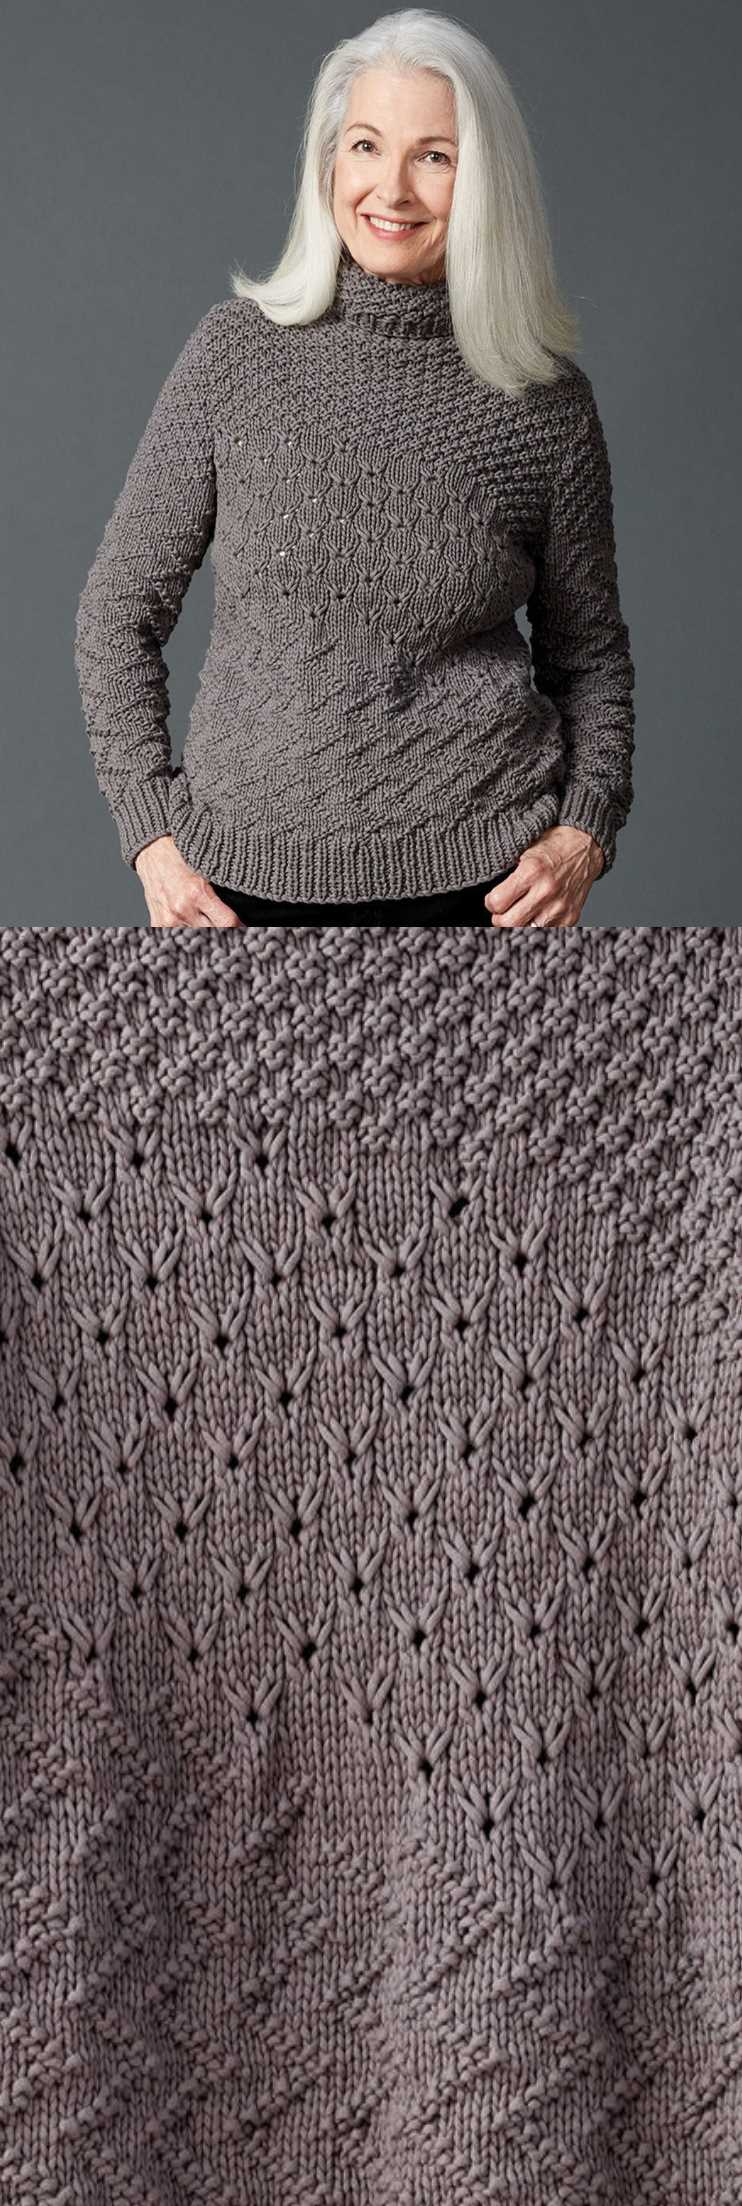 Free Knitting Pattern For A Texture Mix Knit Sweater